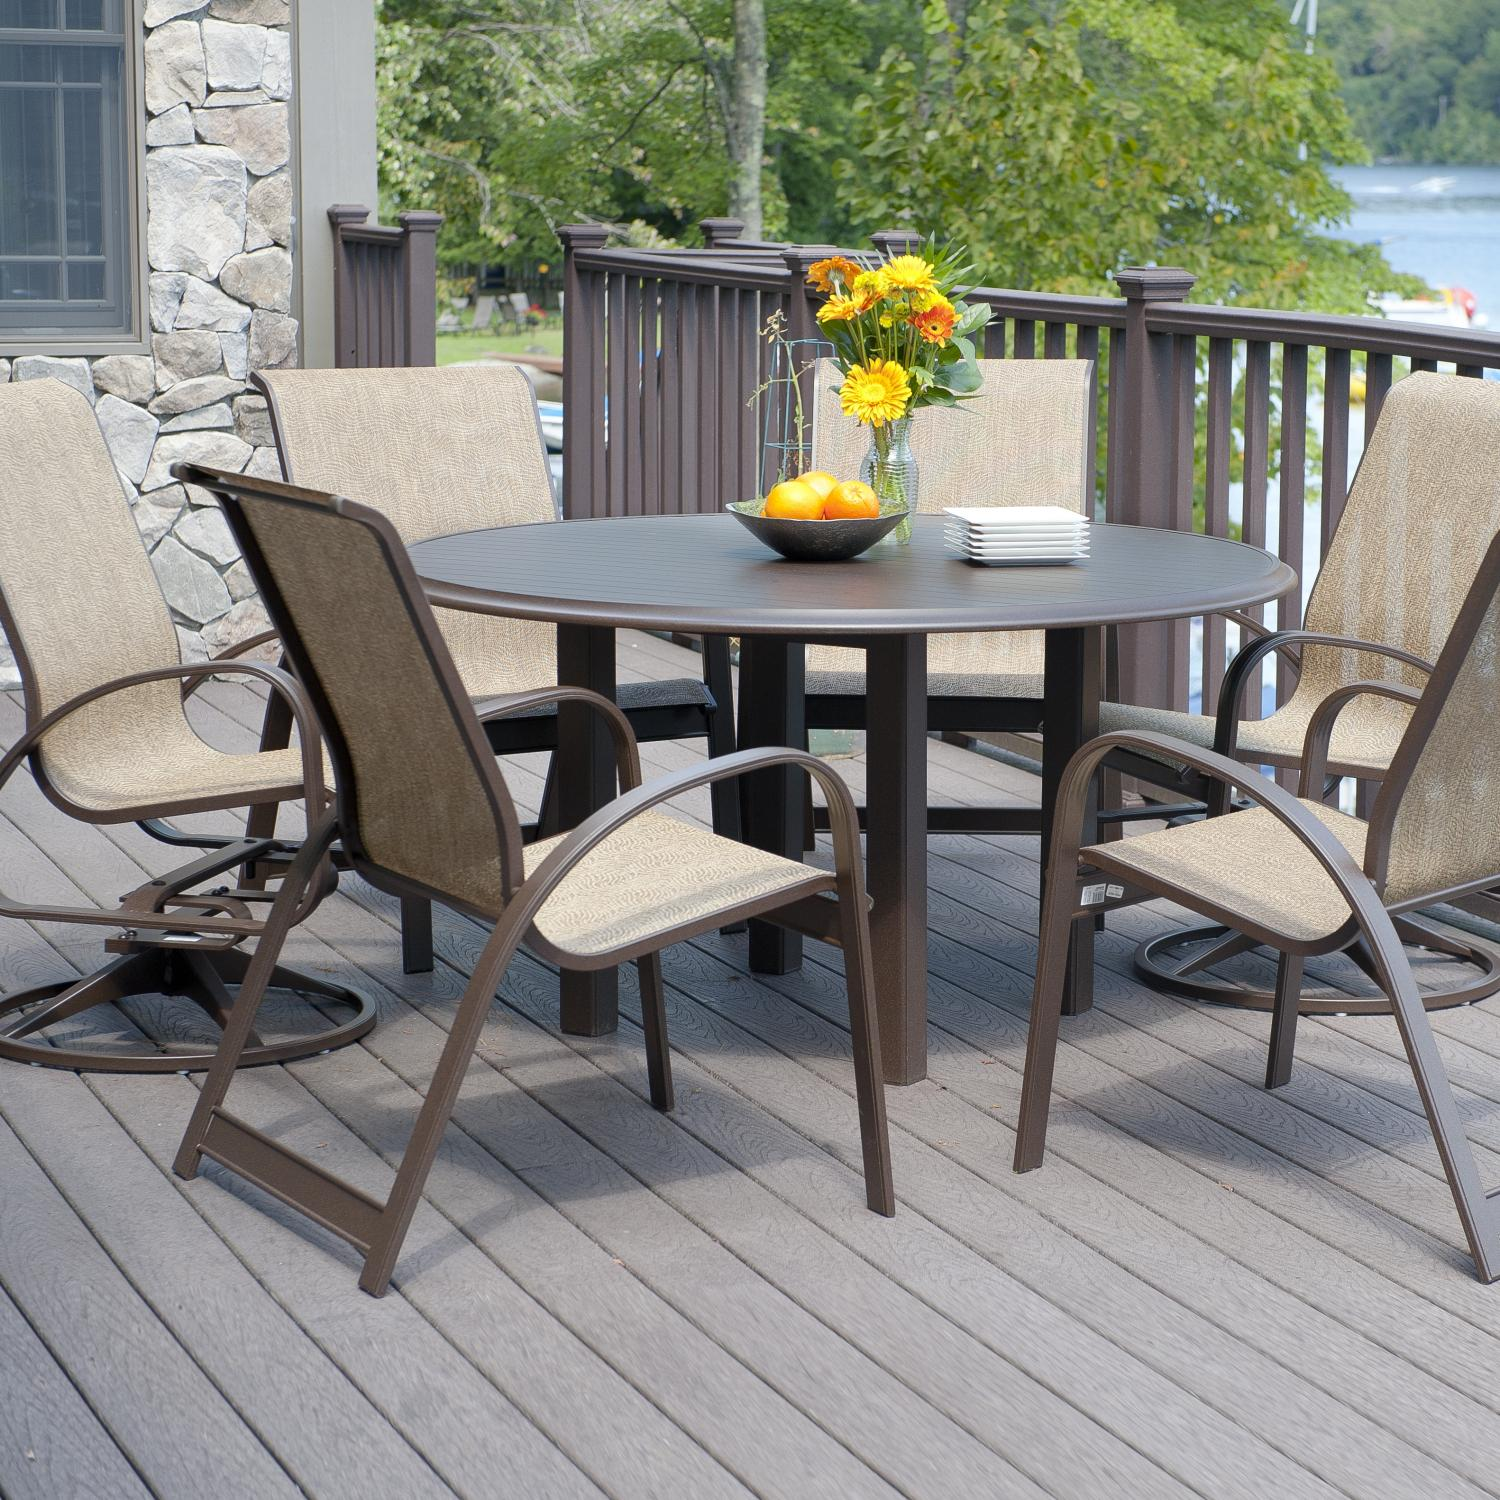 Outdoor Furniture Affordable: Cheap Patio Dining Sets Creativity